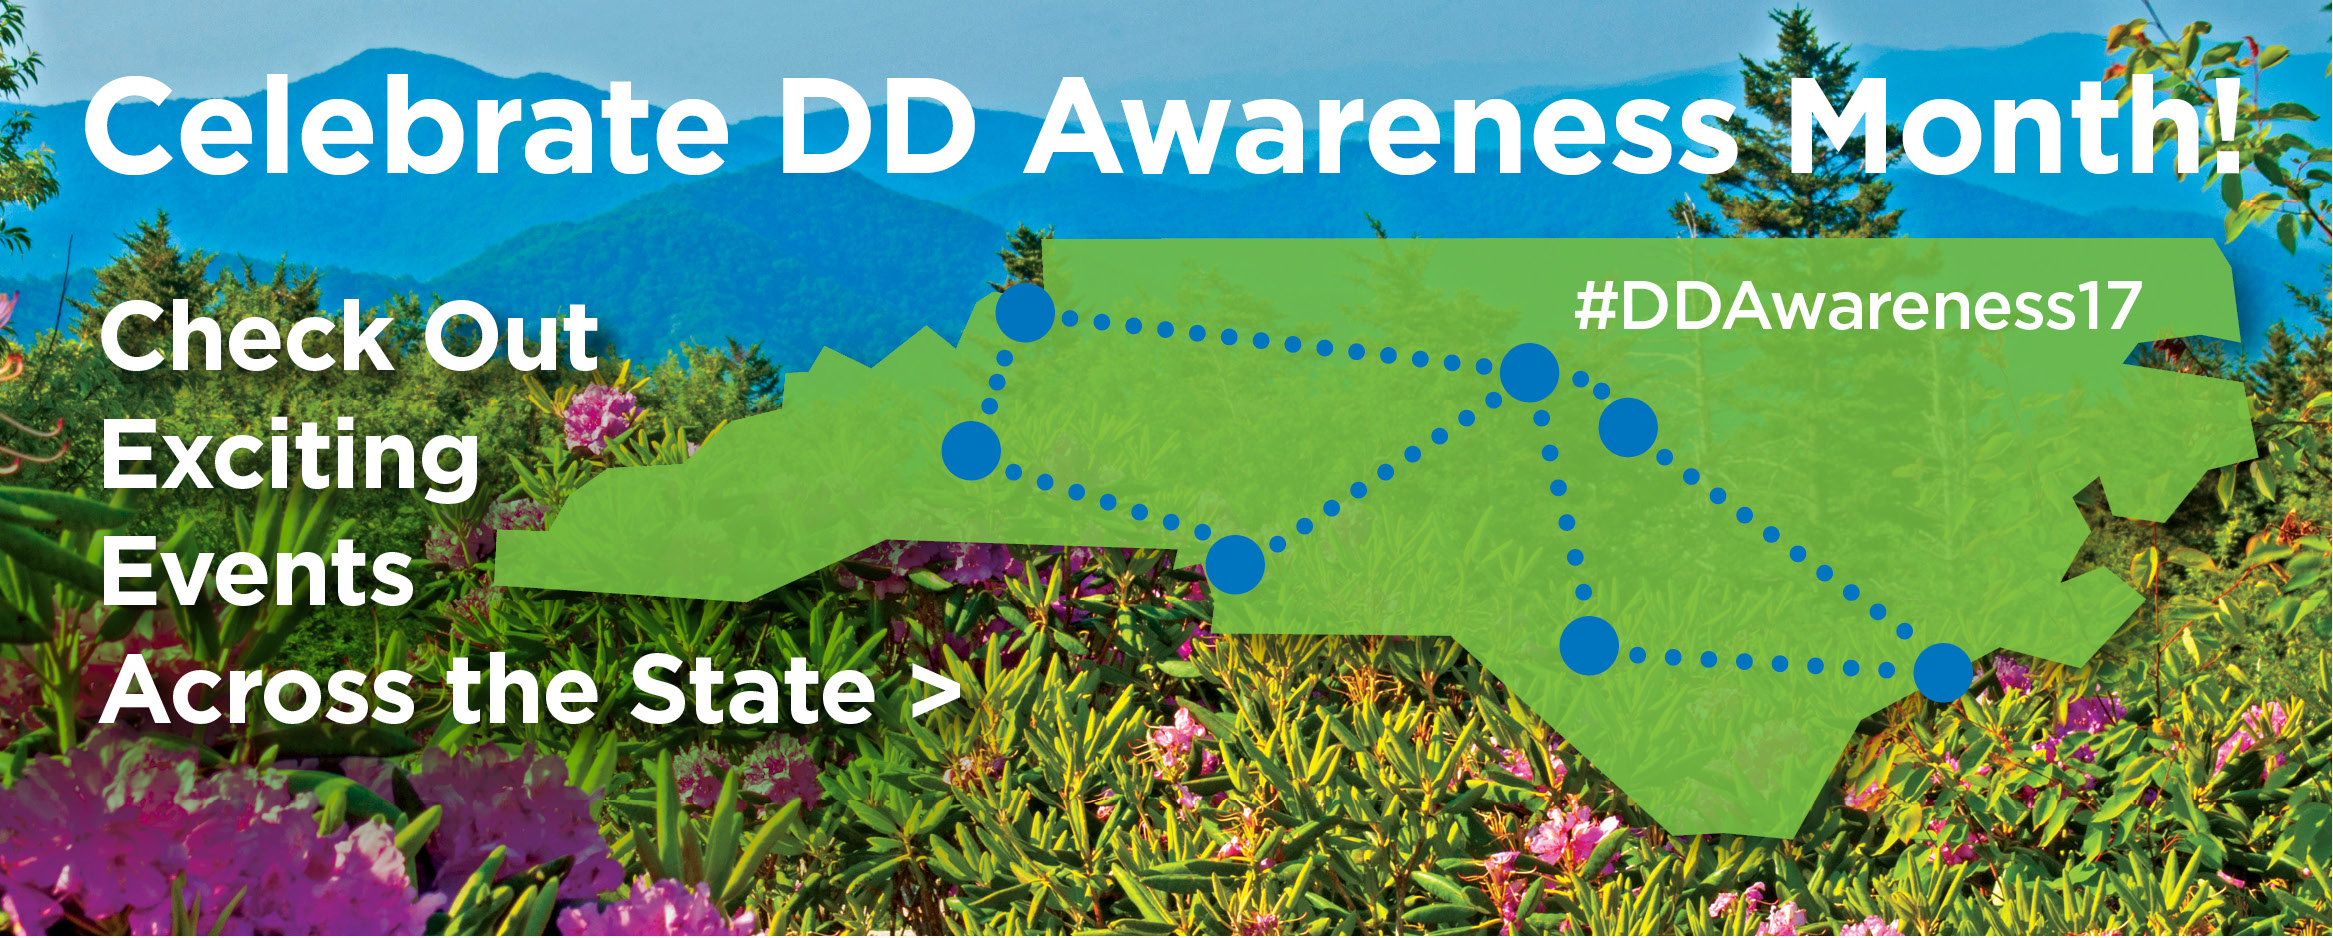 Celebrate DD Awareness Month! Check Out Exciting Events across the State > #DDAwareness17